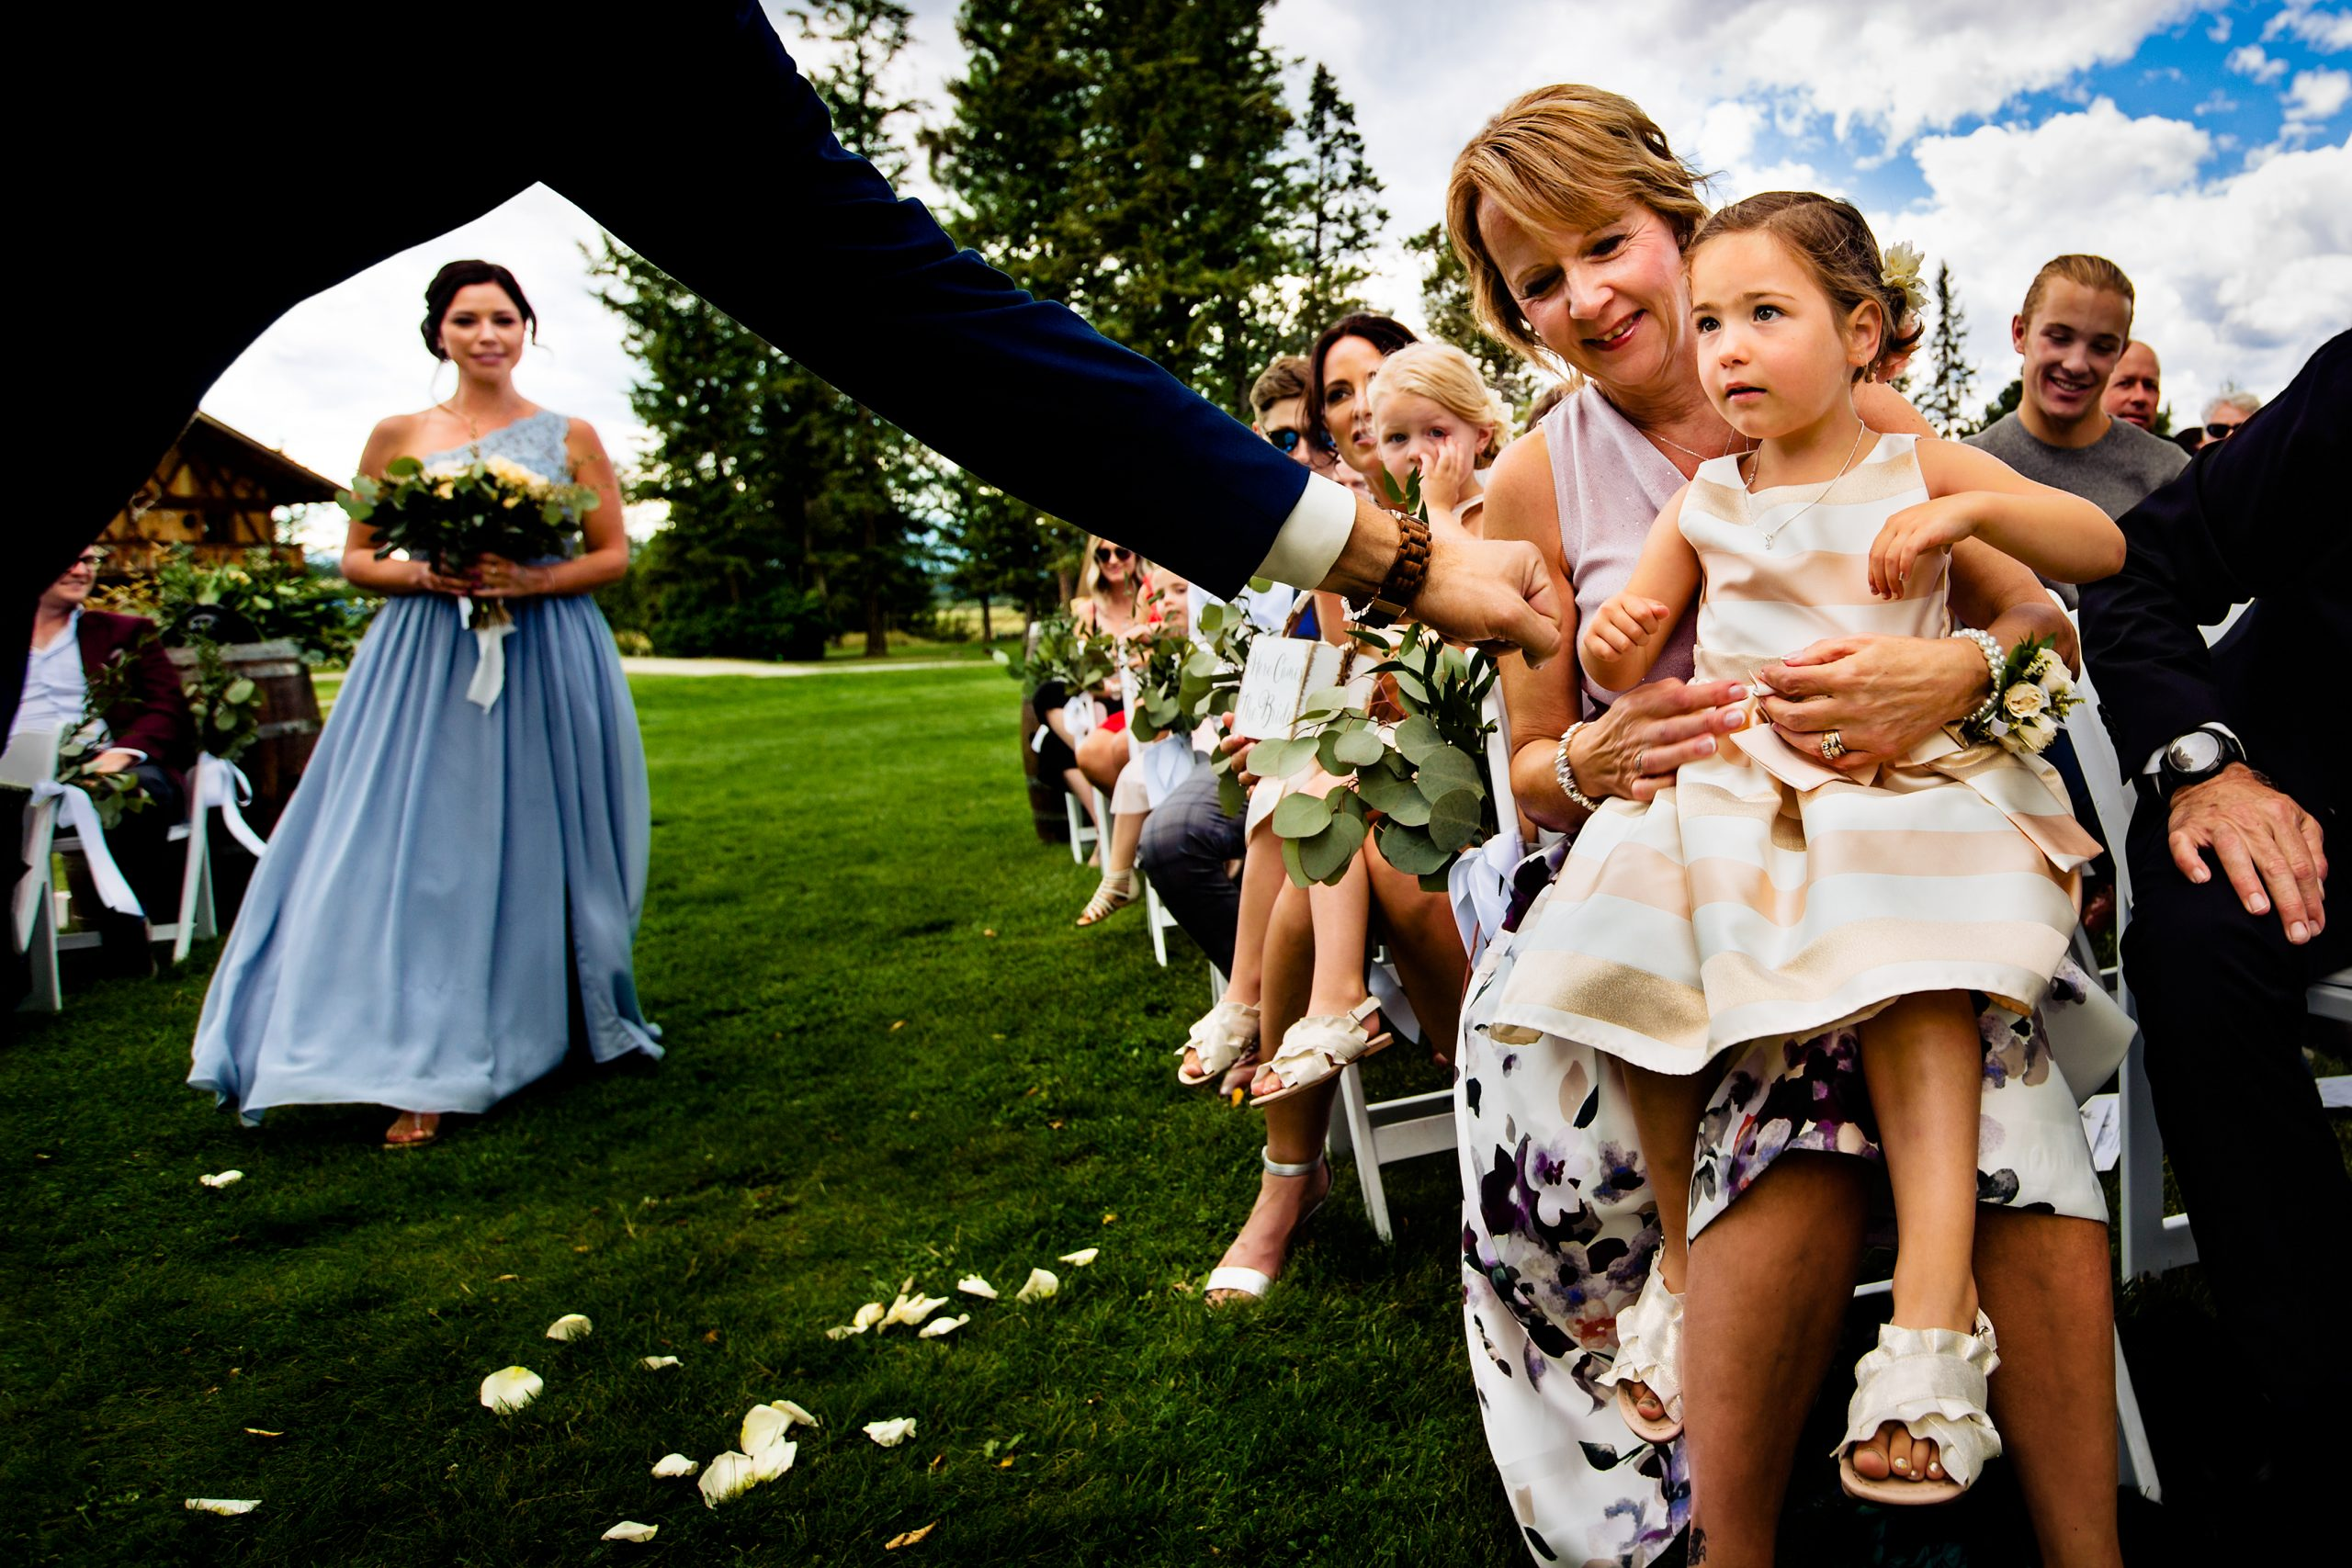 Groom offers a fist bump to flower girl in the front row.